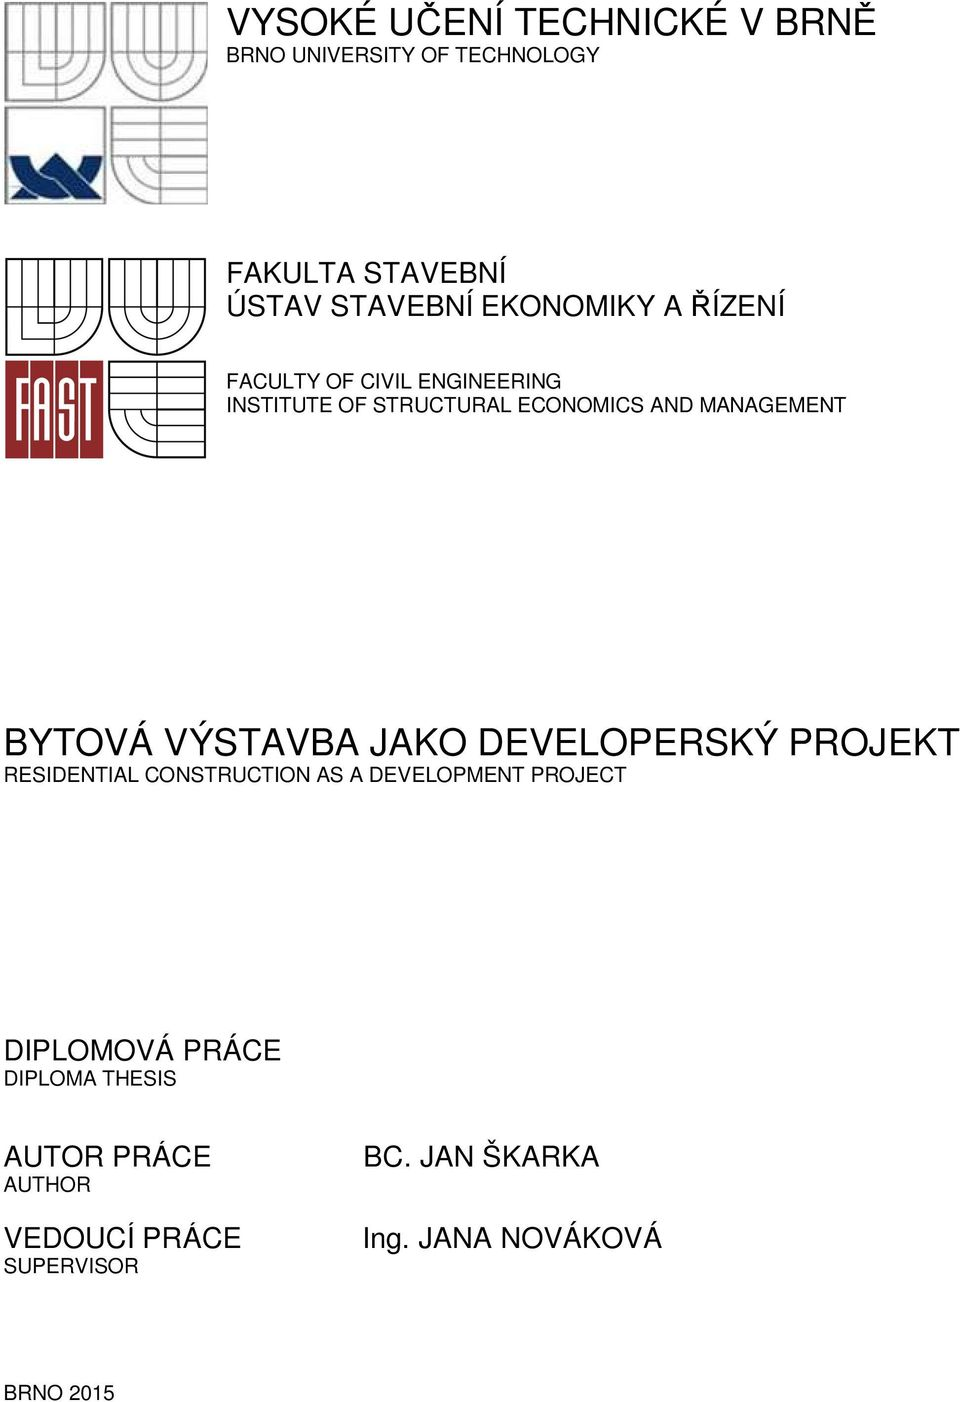 BYTOVÁ VÝSTAVBA JAKO DEVELOPERSKÝ PROJEKT RESIDENTIAL CONSTRUCTION AS A DEVELOPMENT PROJECT